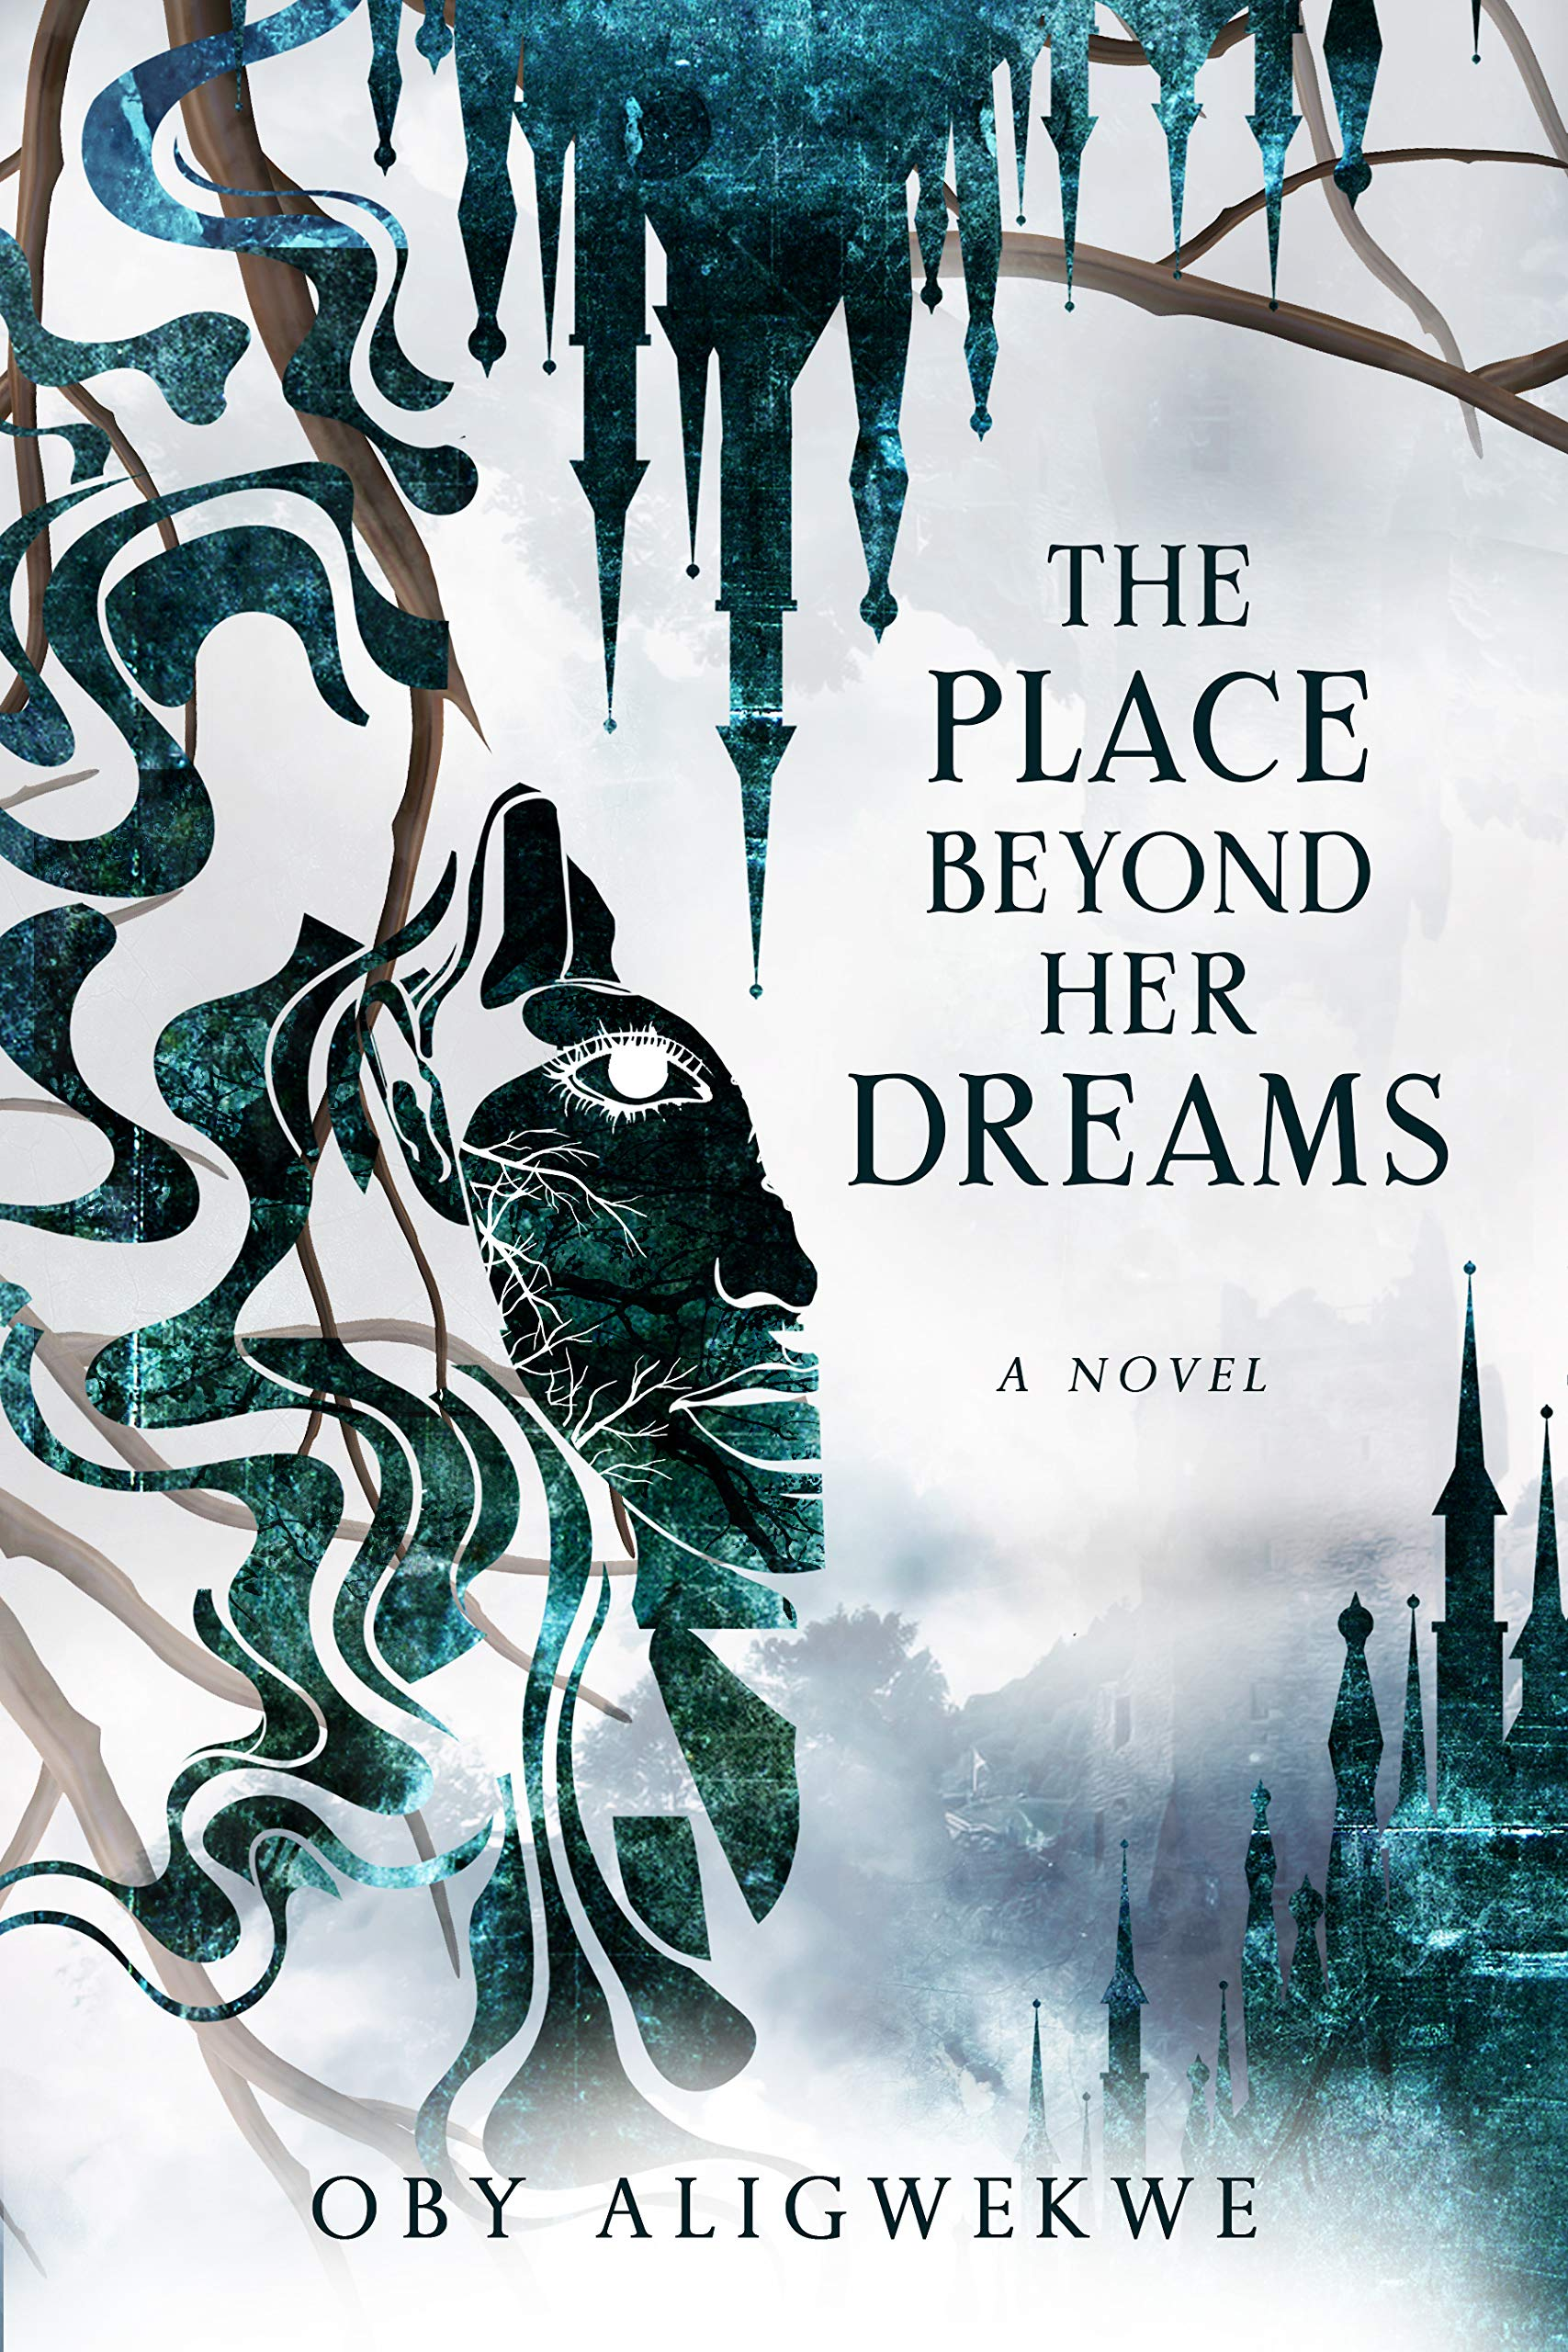 The Place Beyond Her Dreams by Oby Aligwekwe